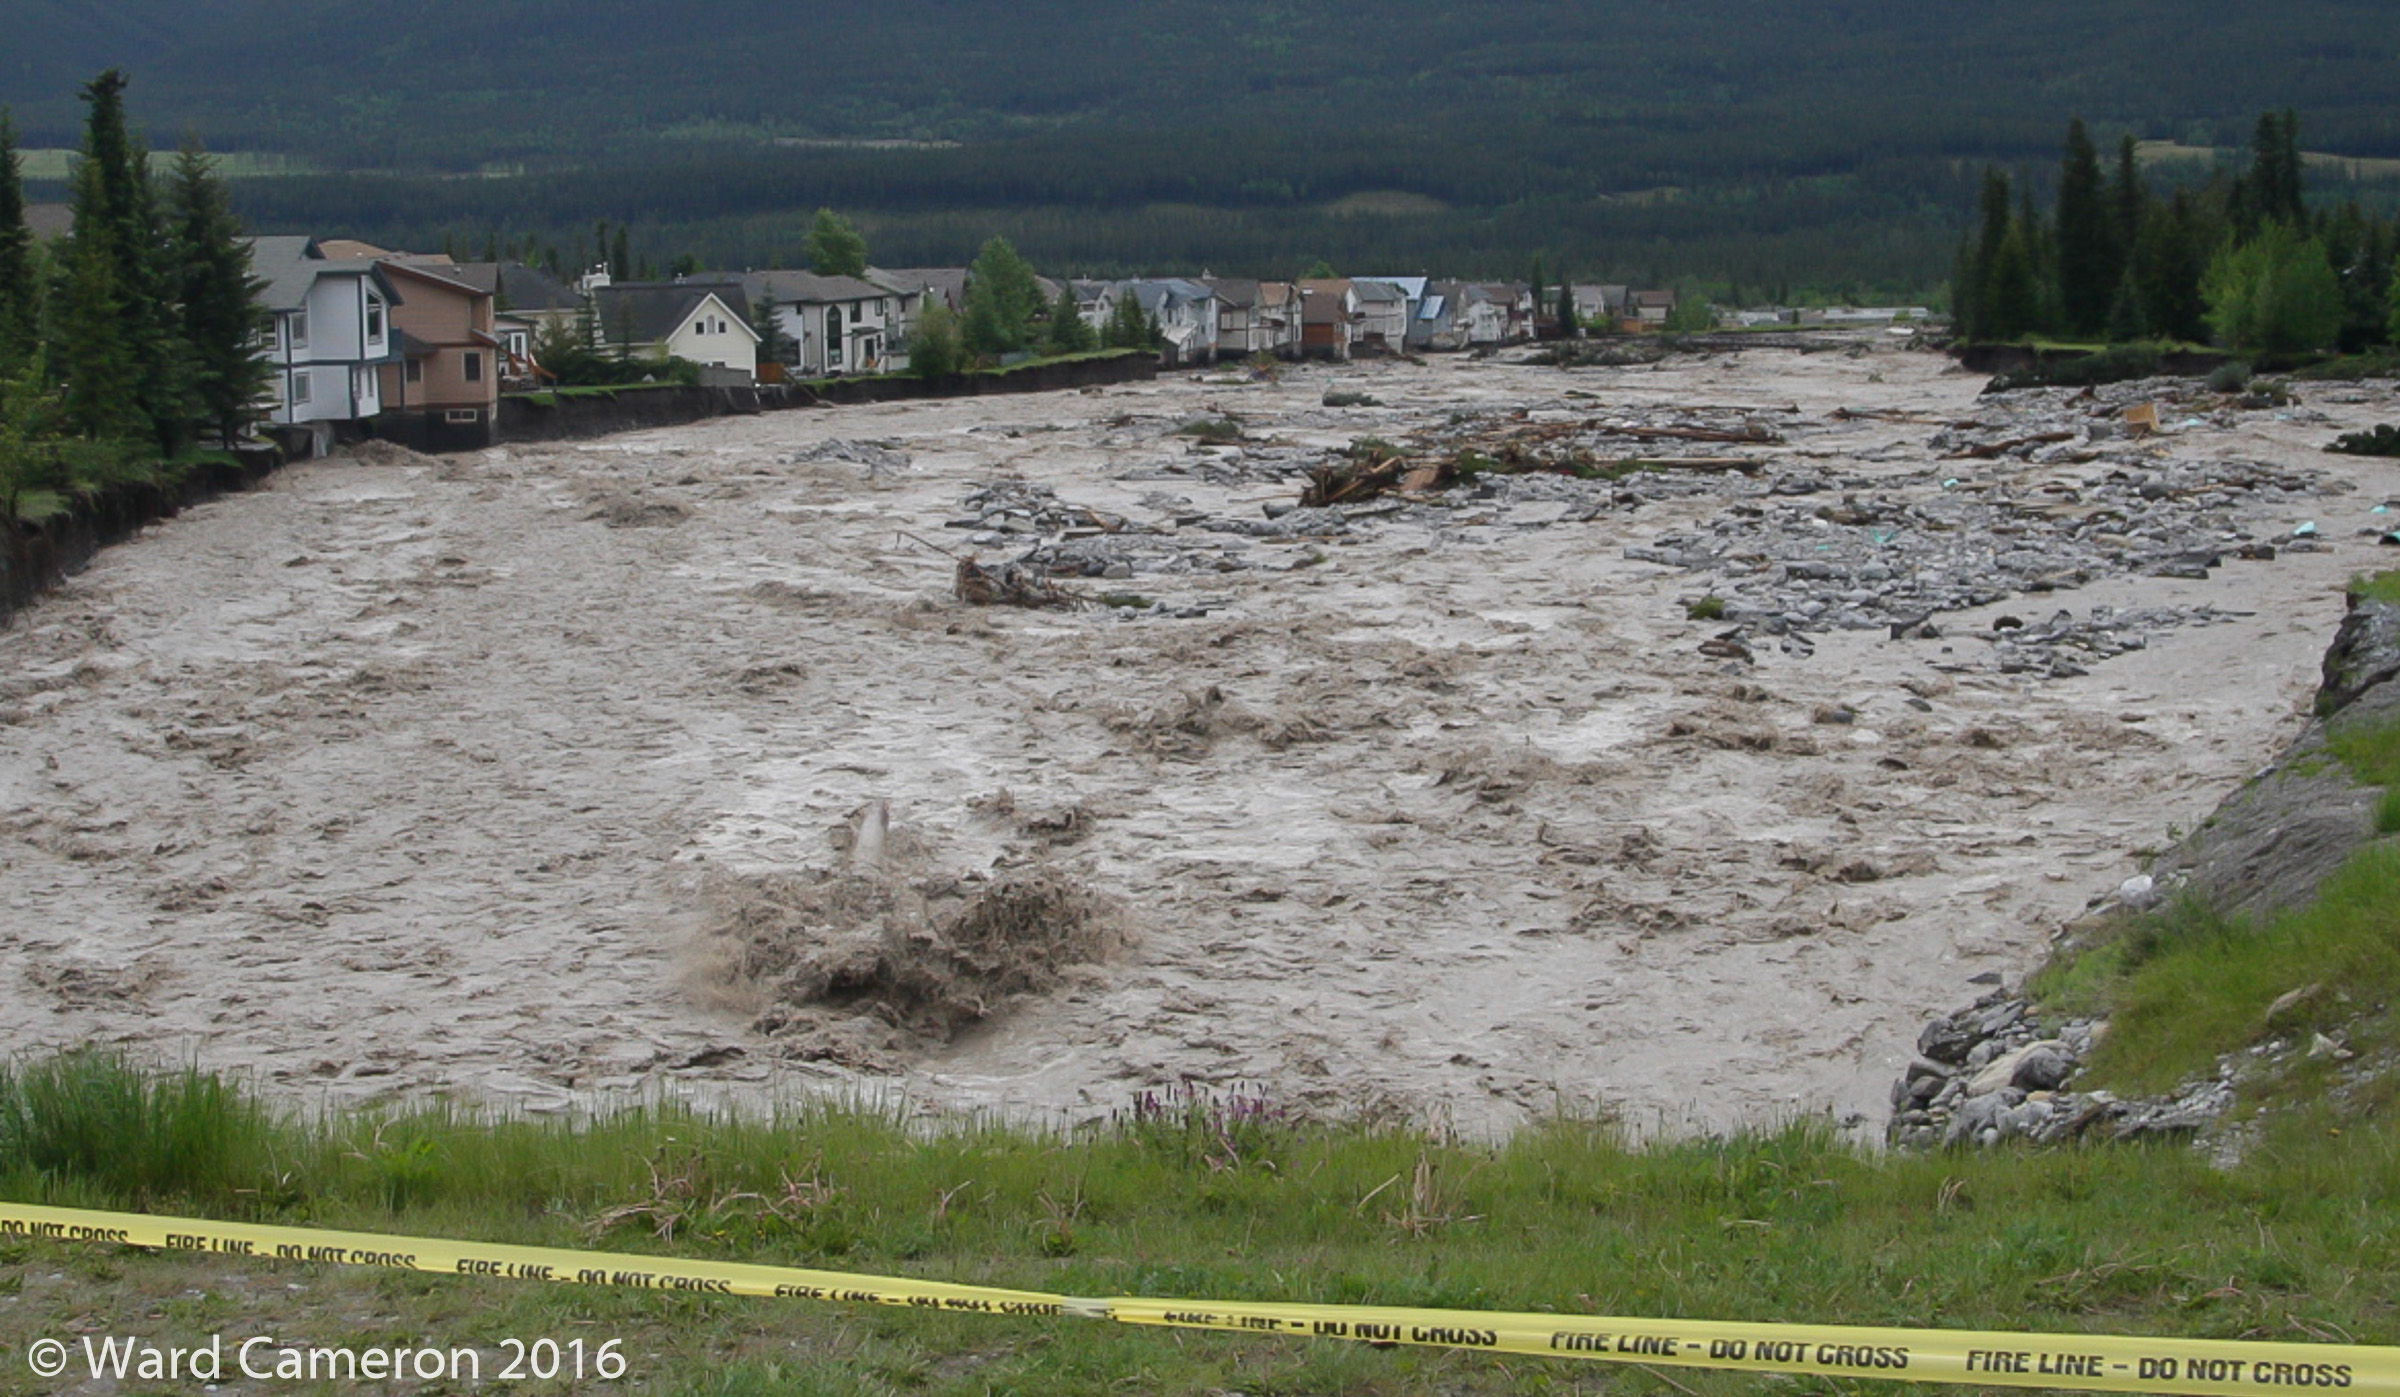 Undercutting of houses along Cougar Creek during the floods in Canmore in 2013